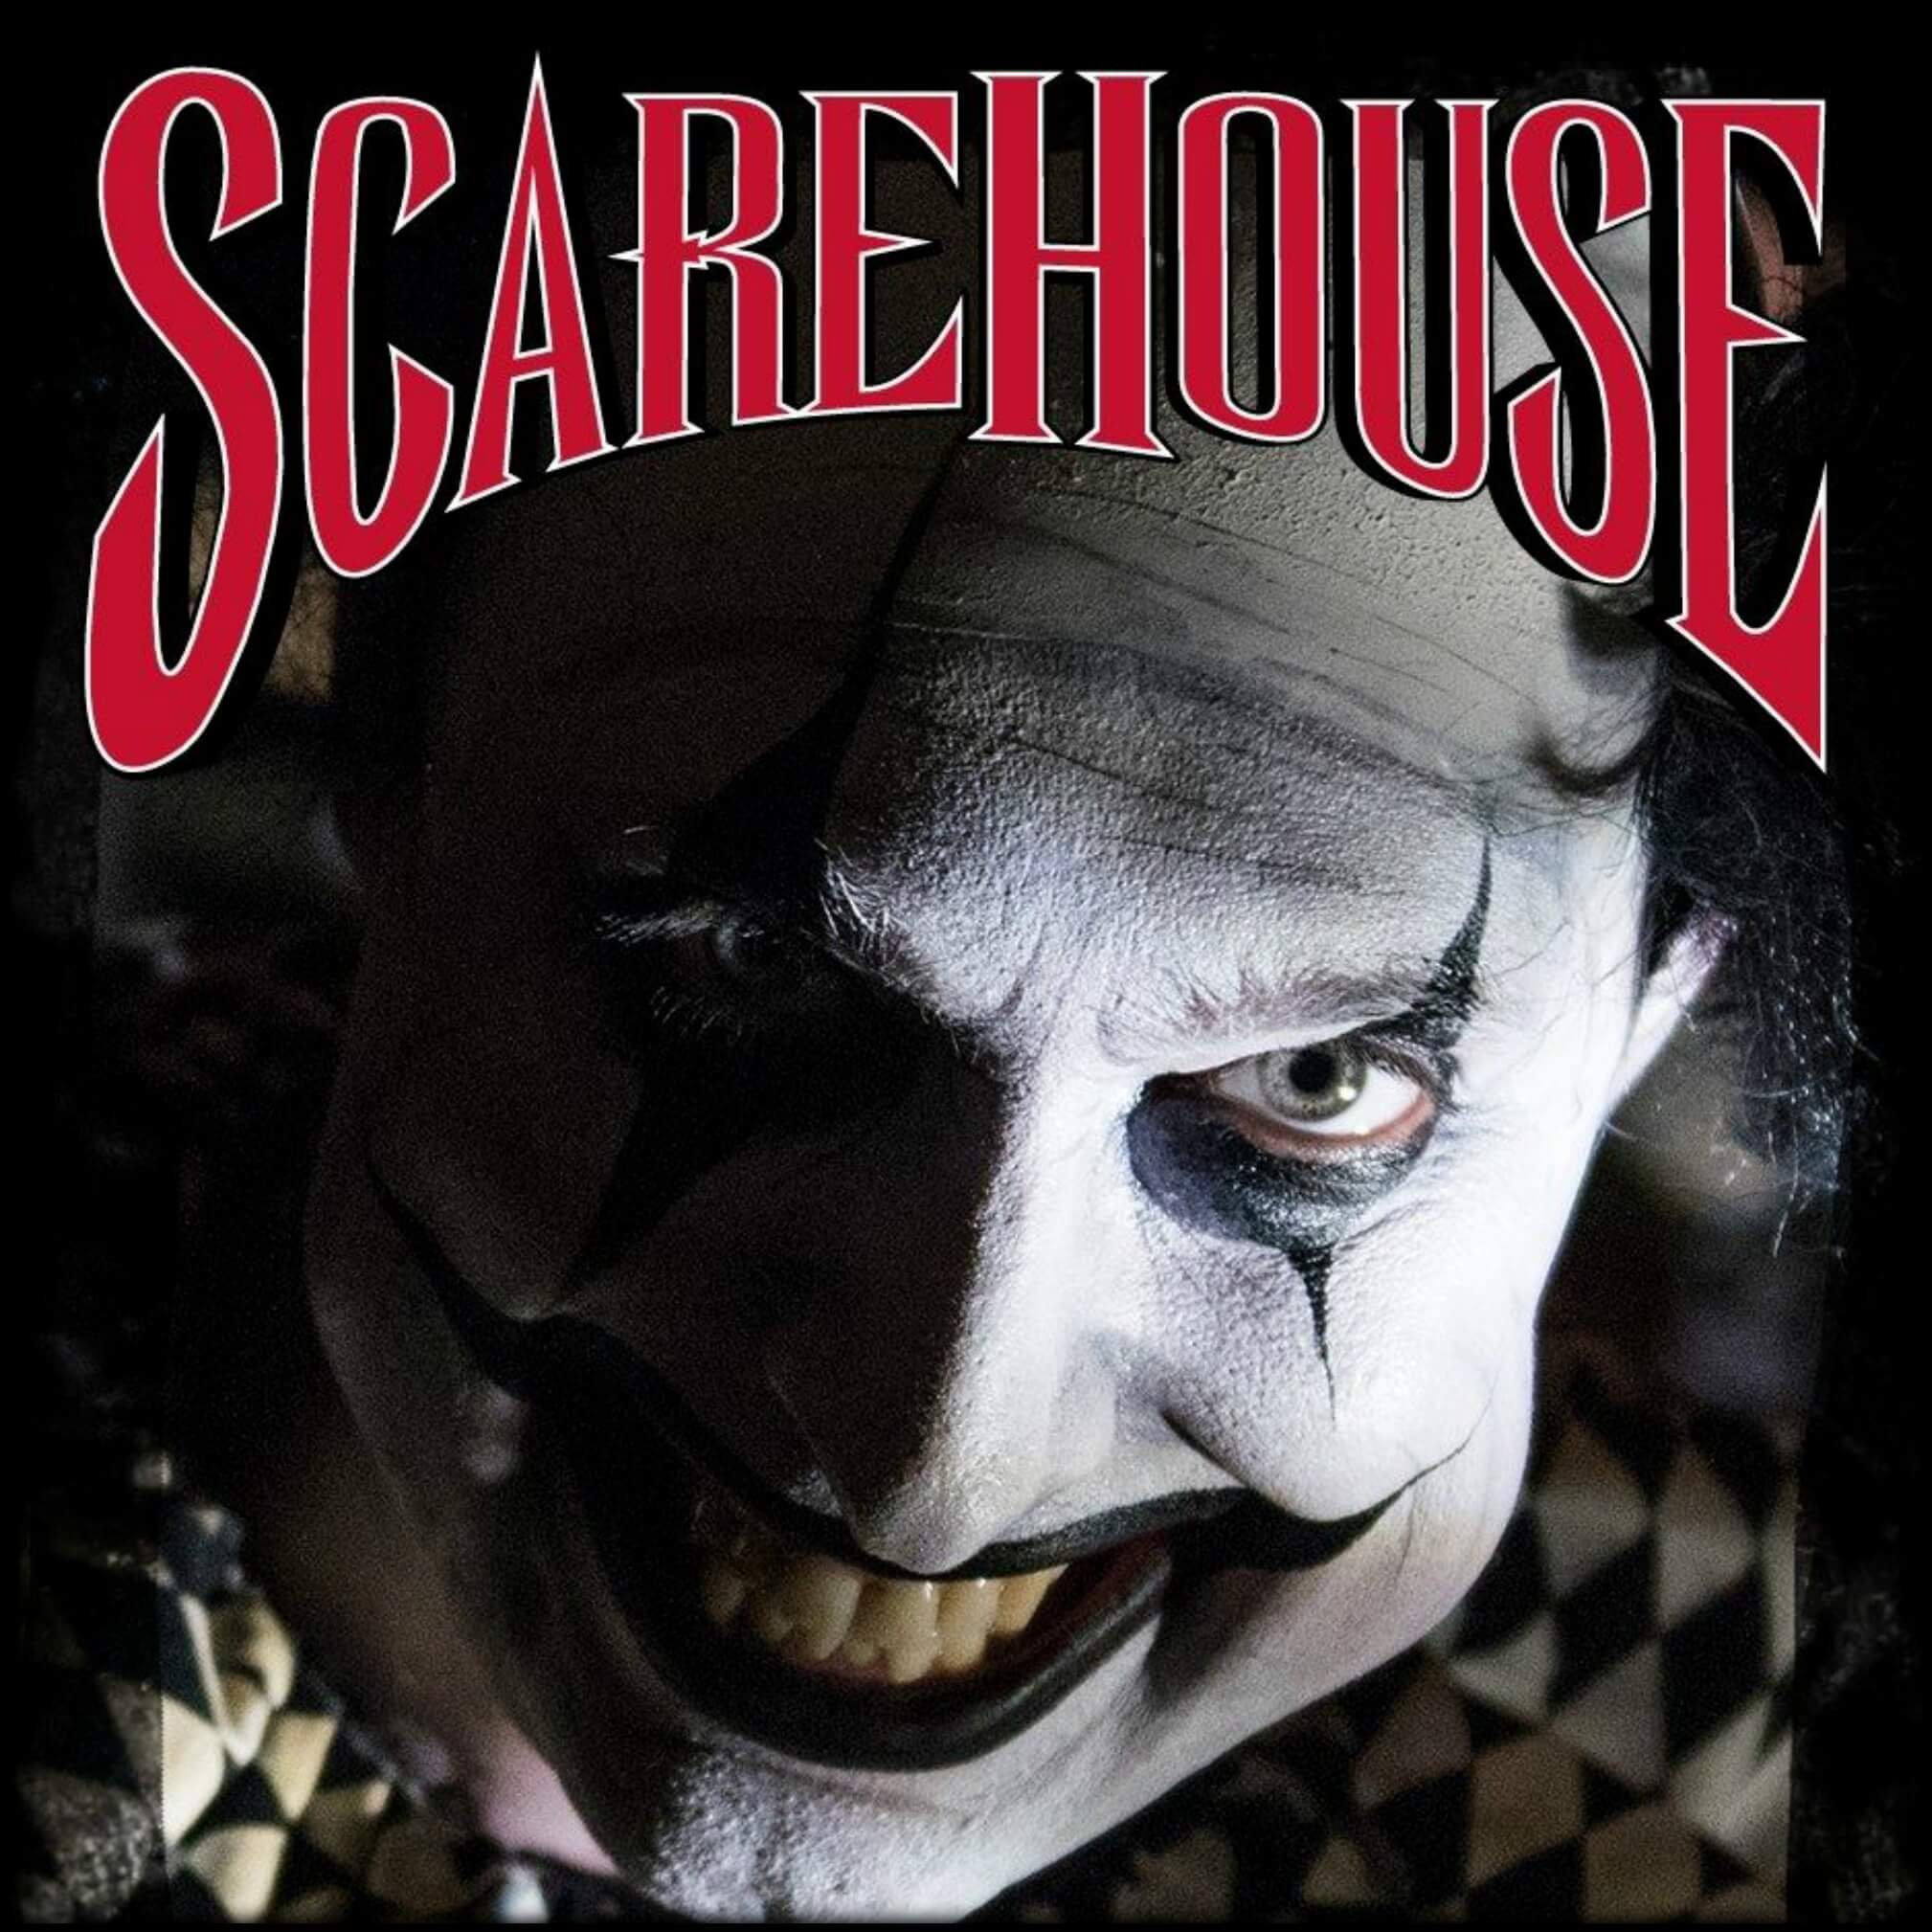 ScareHouse Review